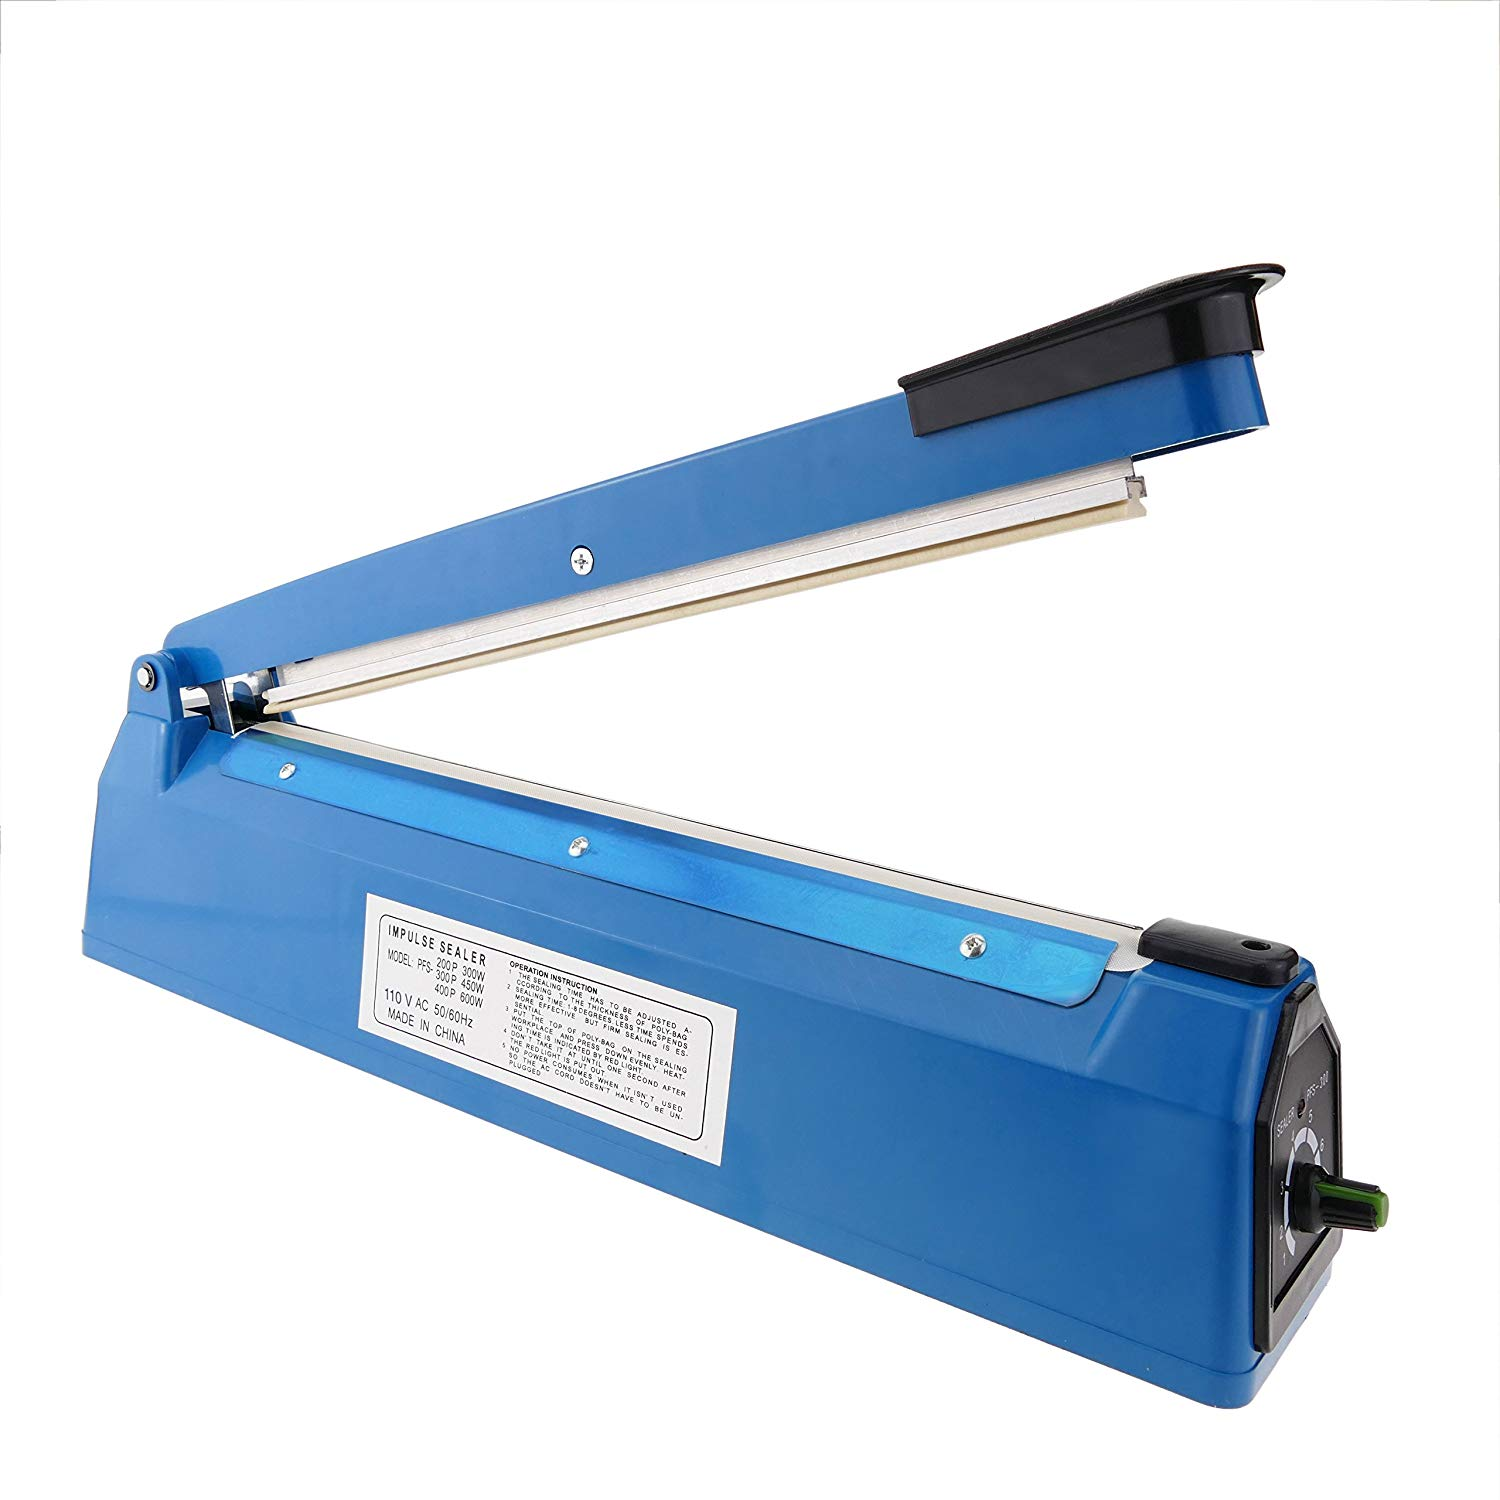 """Zimtown 12"""" Impulse Manual Hand Sealer, Heat Sealing Packing Machine for Healing Poly Tubing Plastic Bag, with Spare Teflon & Sealing Elements, Auto LED Shut-off Indicator Light"""